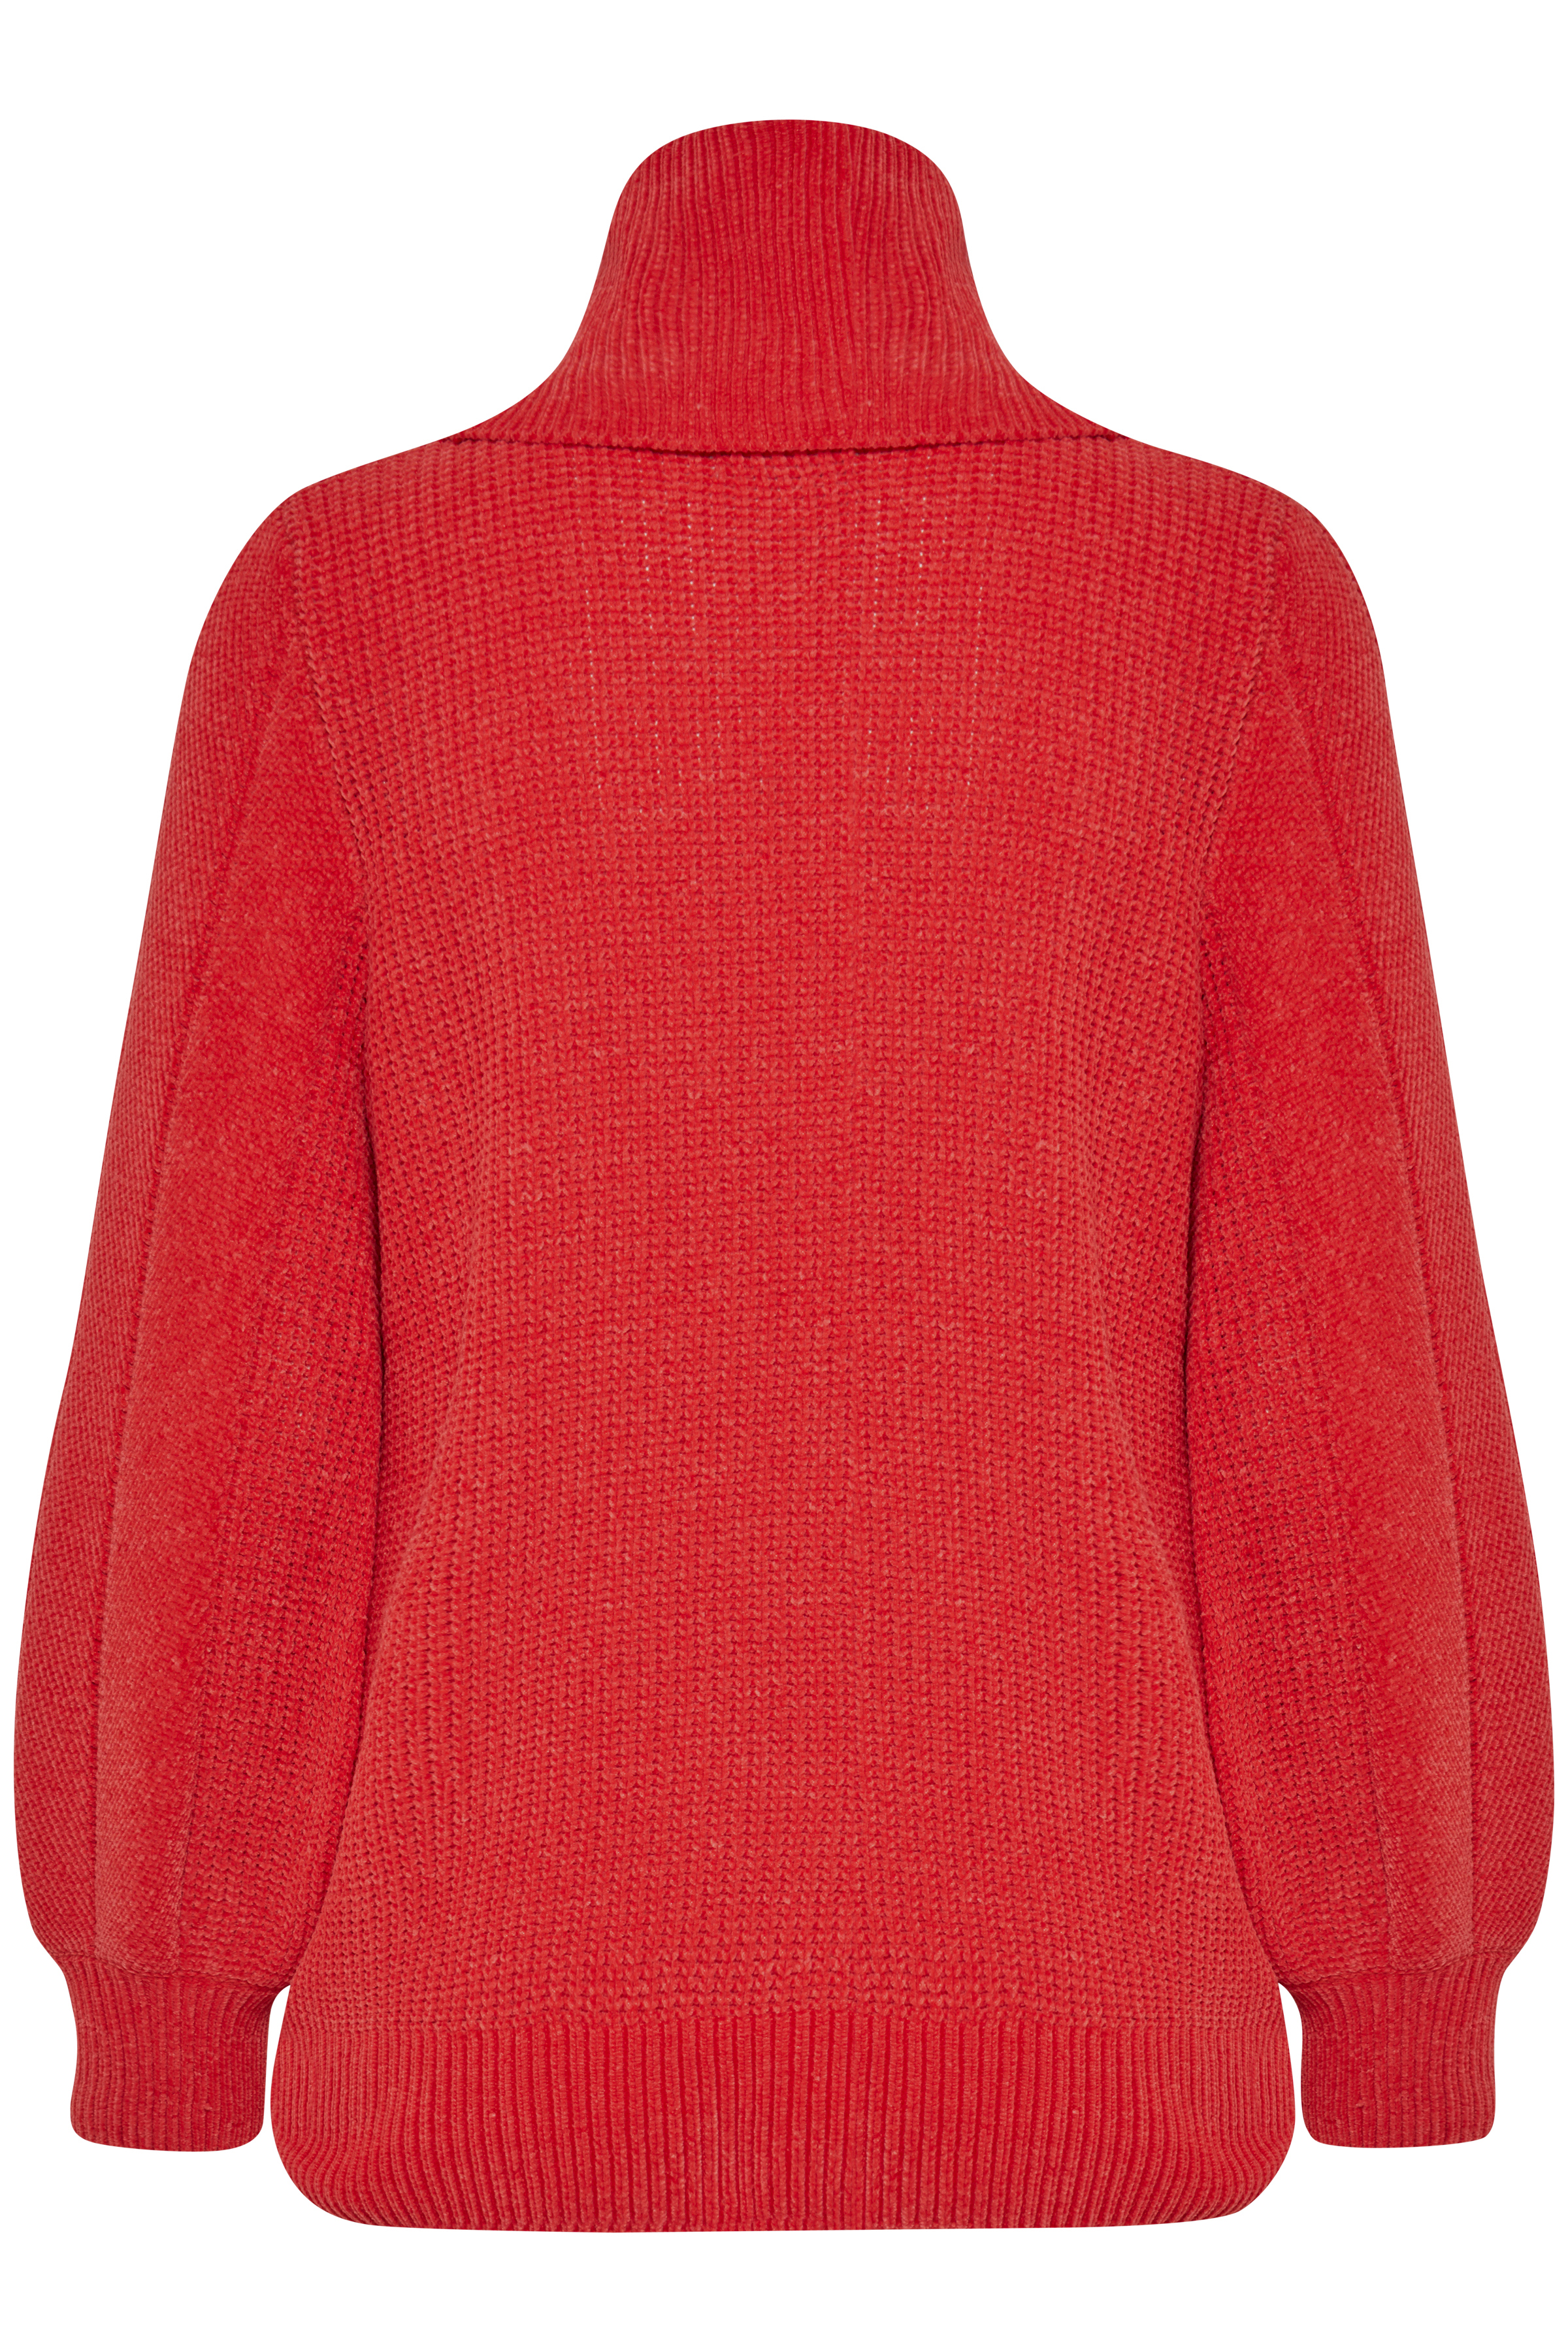 Chinese Red Strikket pullover fra b.young - Kjøp Chinese Red Strikket pullover fra størrelse XS-XXL her